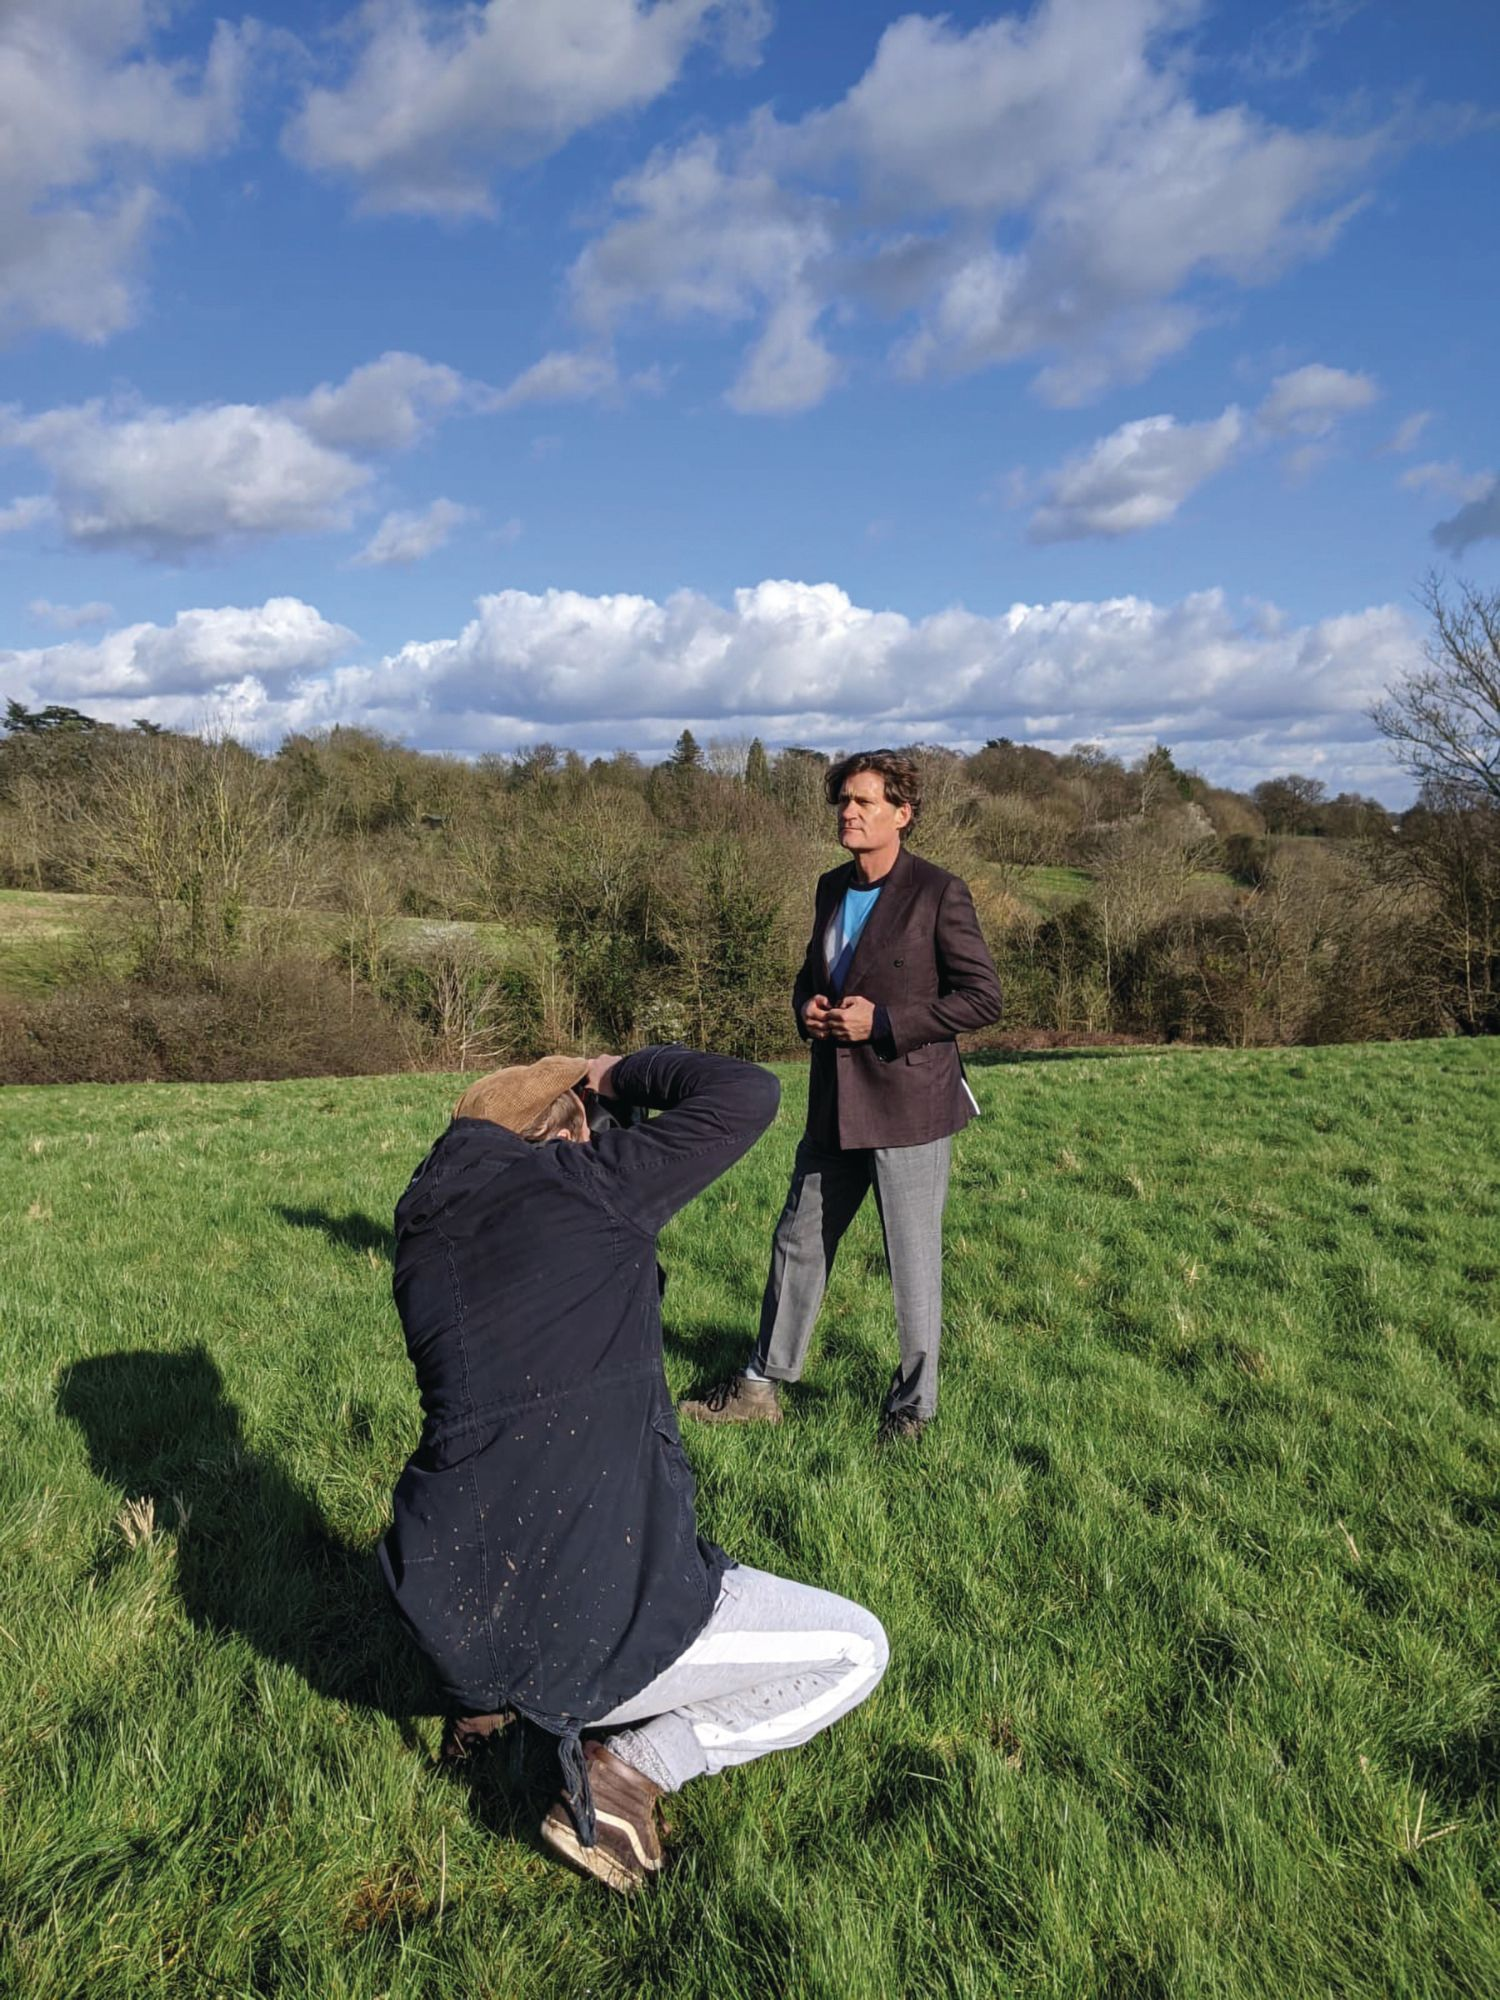 Behind the Scenes: Craig Leeson's Cover Shoot Wasn't All Blue Skies